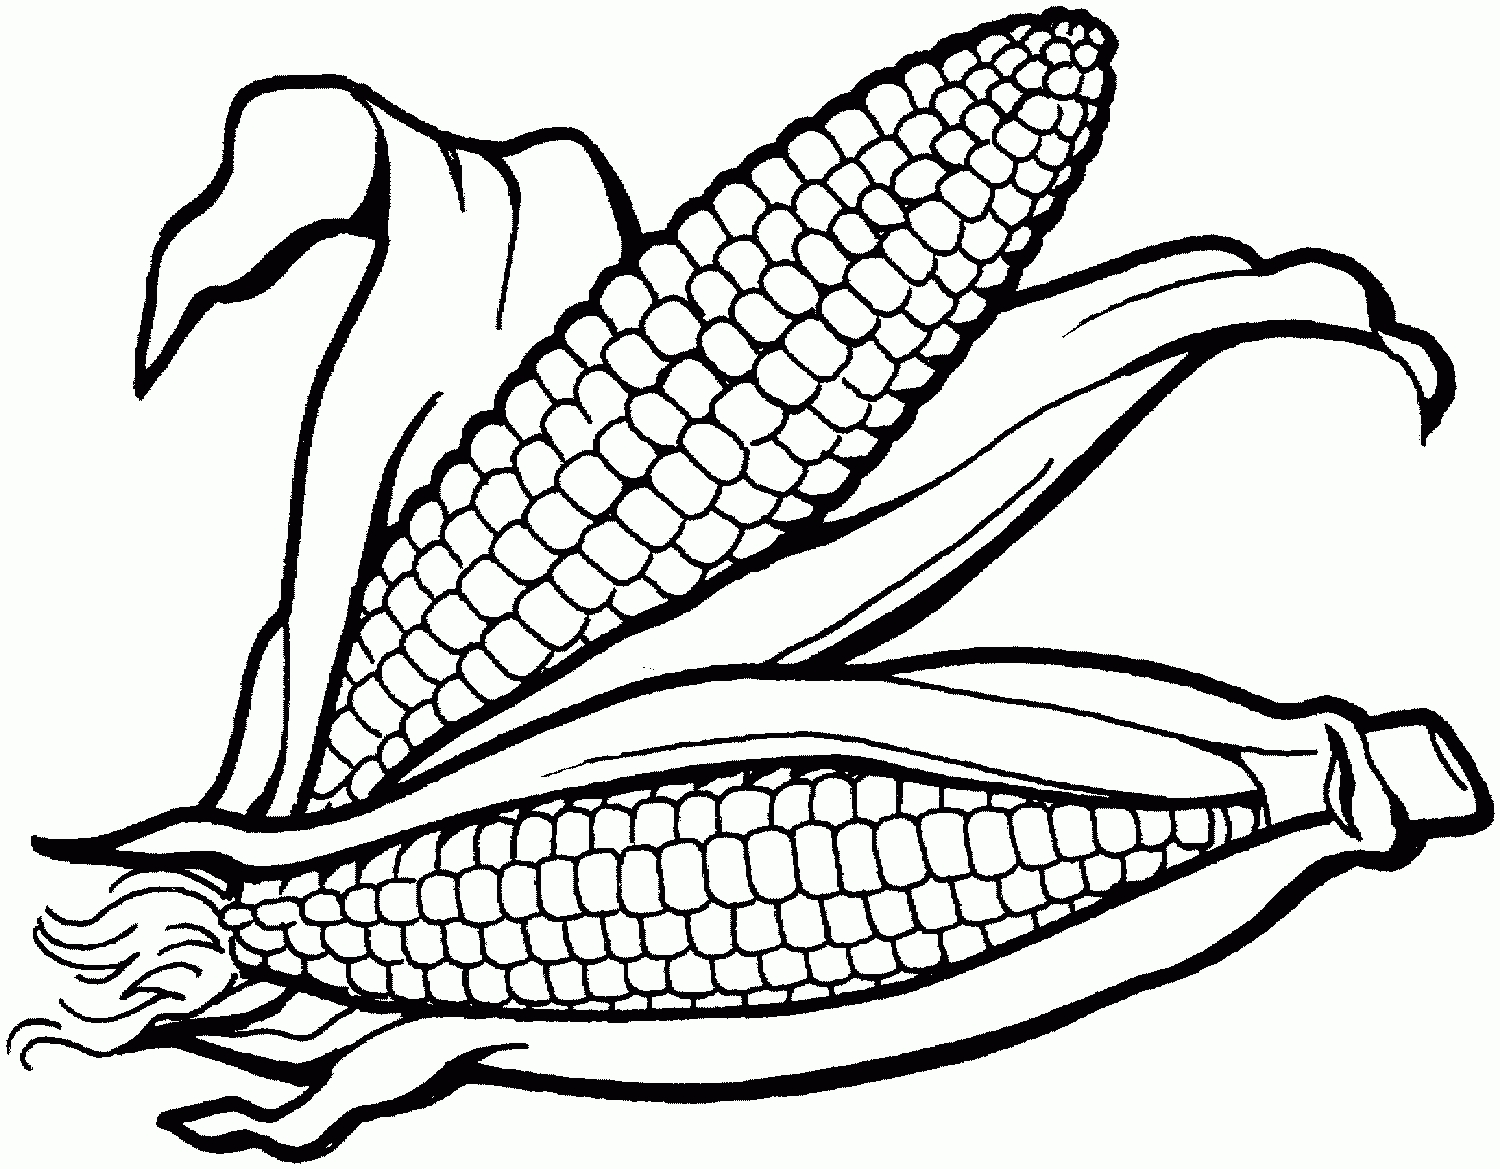 Corn clipart. Black and white jokingart